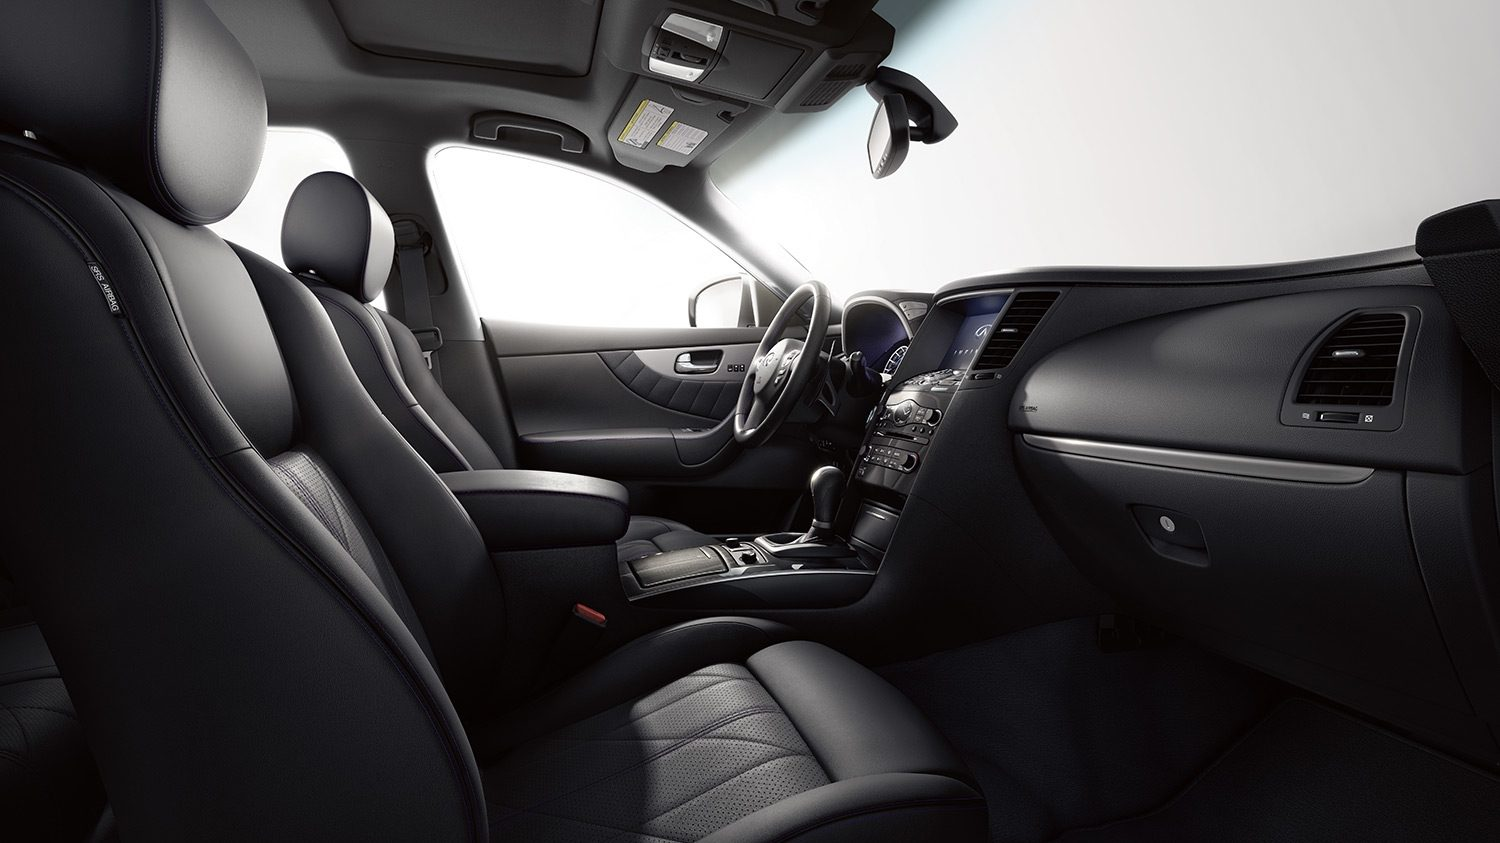 INFINITI QX70 Crossover SUV Interior Front Seat Space Overview